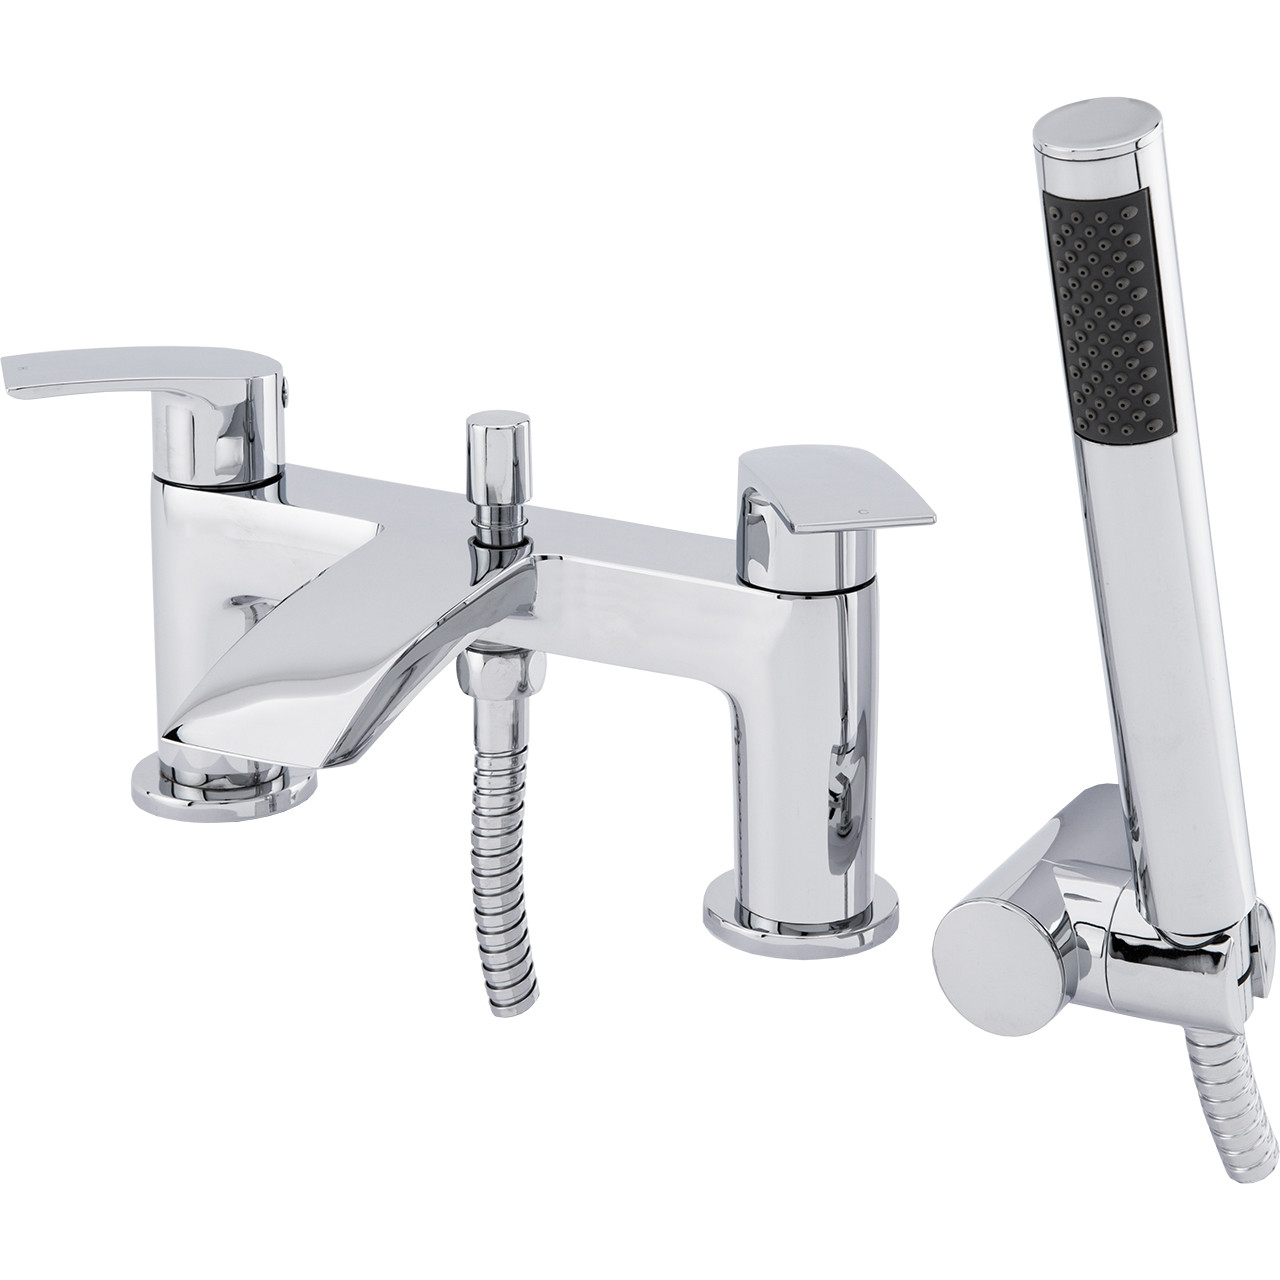 Crest Bath Shower Mixer Tap & Kit